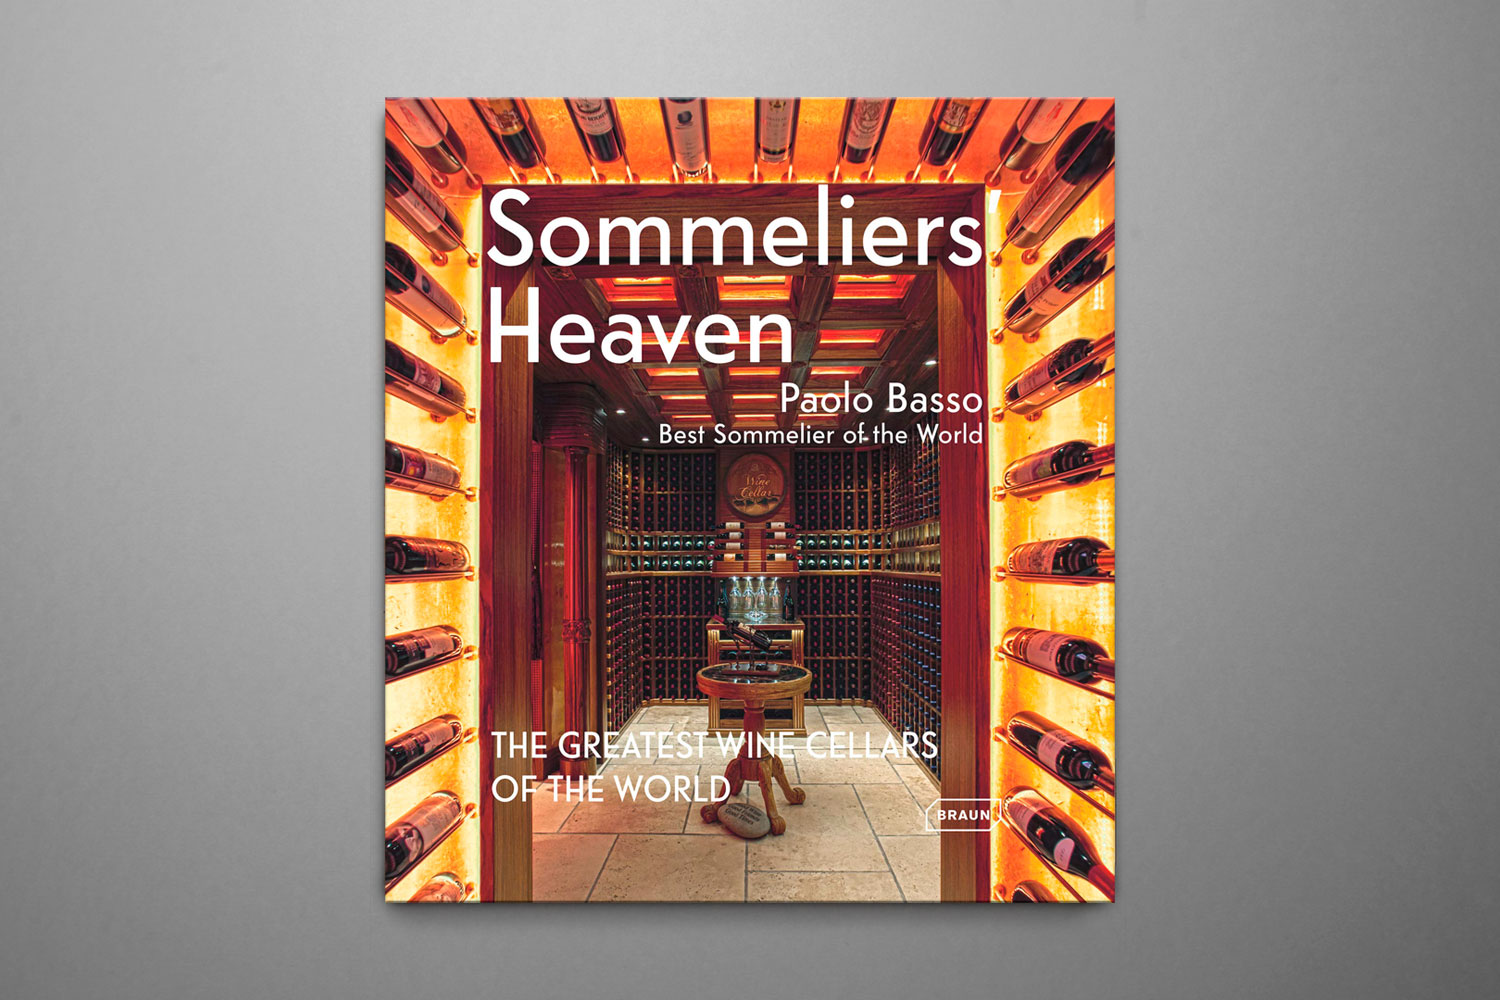 Sommeliers Heaven | The Greatest Wine Cellars of the World - Paolo BassoBraun Publishing2015ISBN-13 : 978-3-03768-183-1